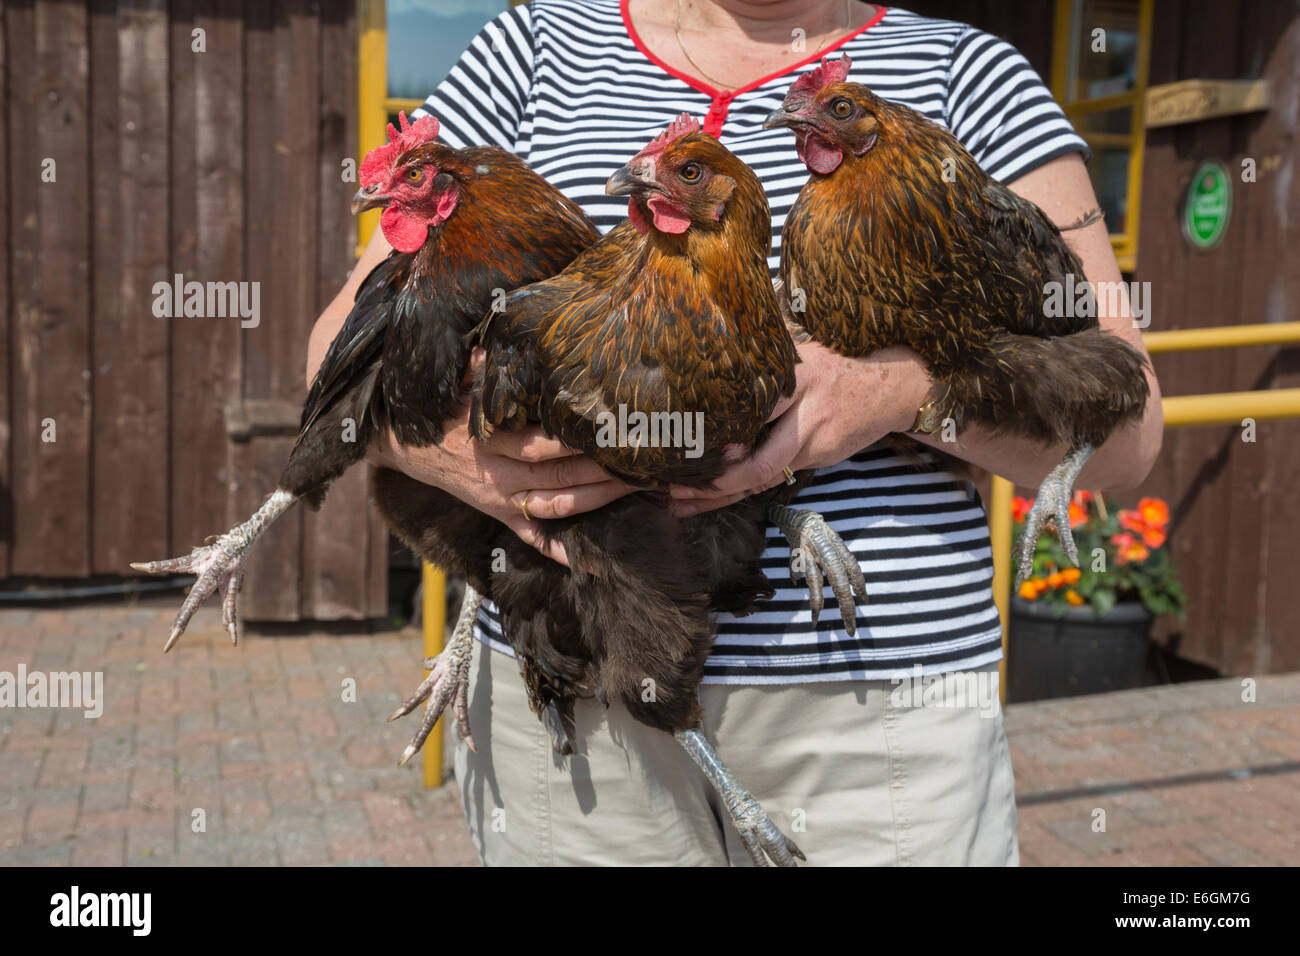 French Marans hens held by poultry keeper Sonja Gregory, The Hytte, Northumberland, June 2014 - Stock Image